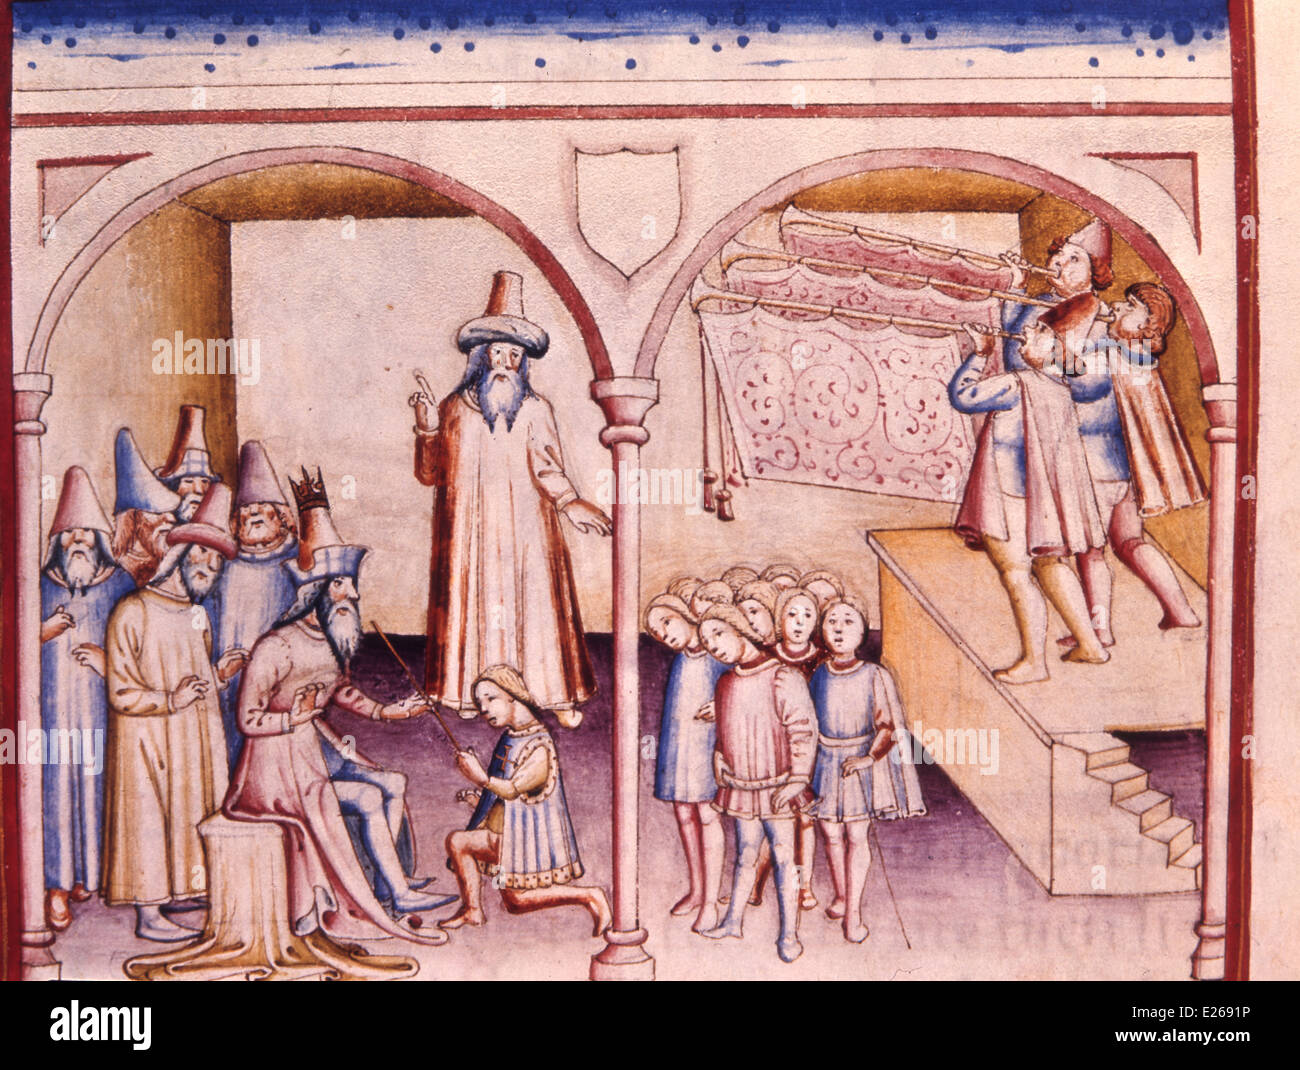 history of Jehoshaphat,costumes and medieval environments Italian,miniature from the 14th century,Cesena,Biblioteca - Stock Image